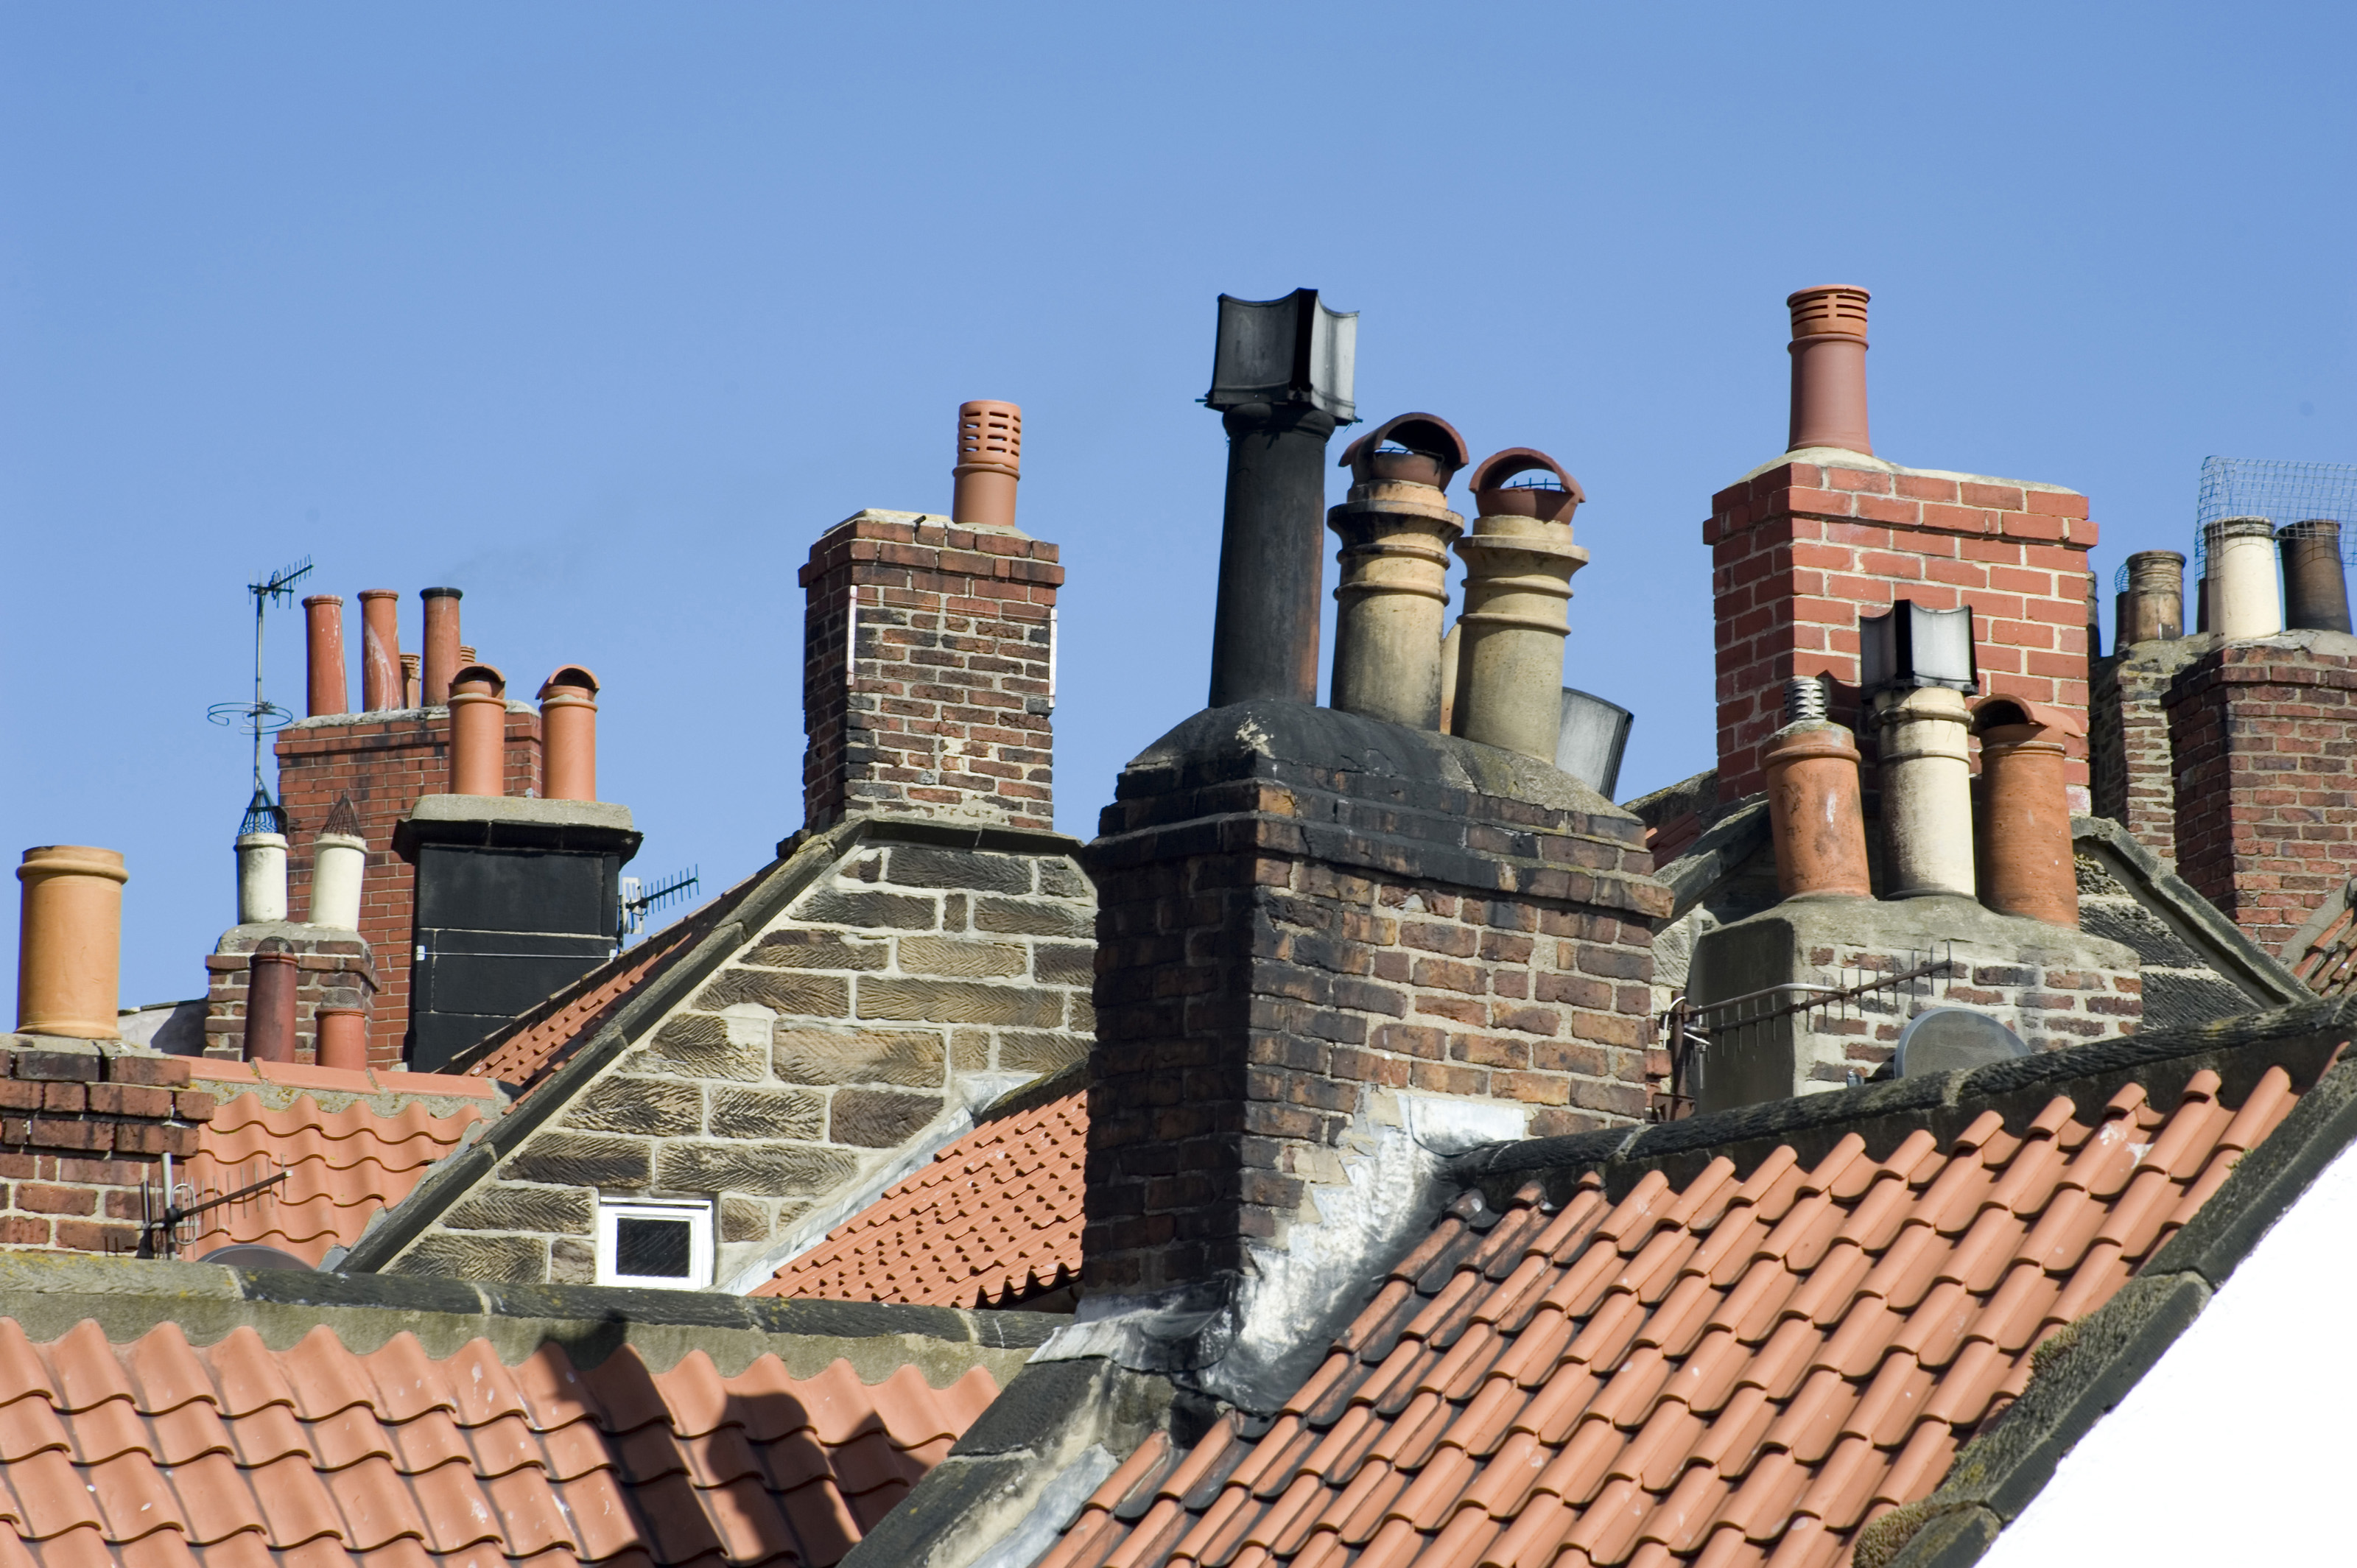 free stock photo 7930 rooftops and chimney pots | freeimageslive